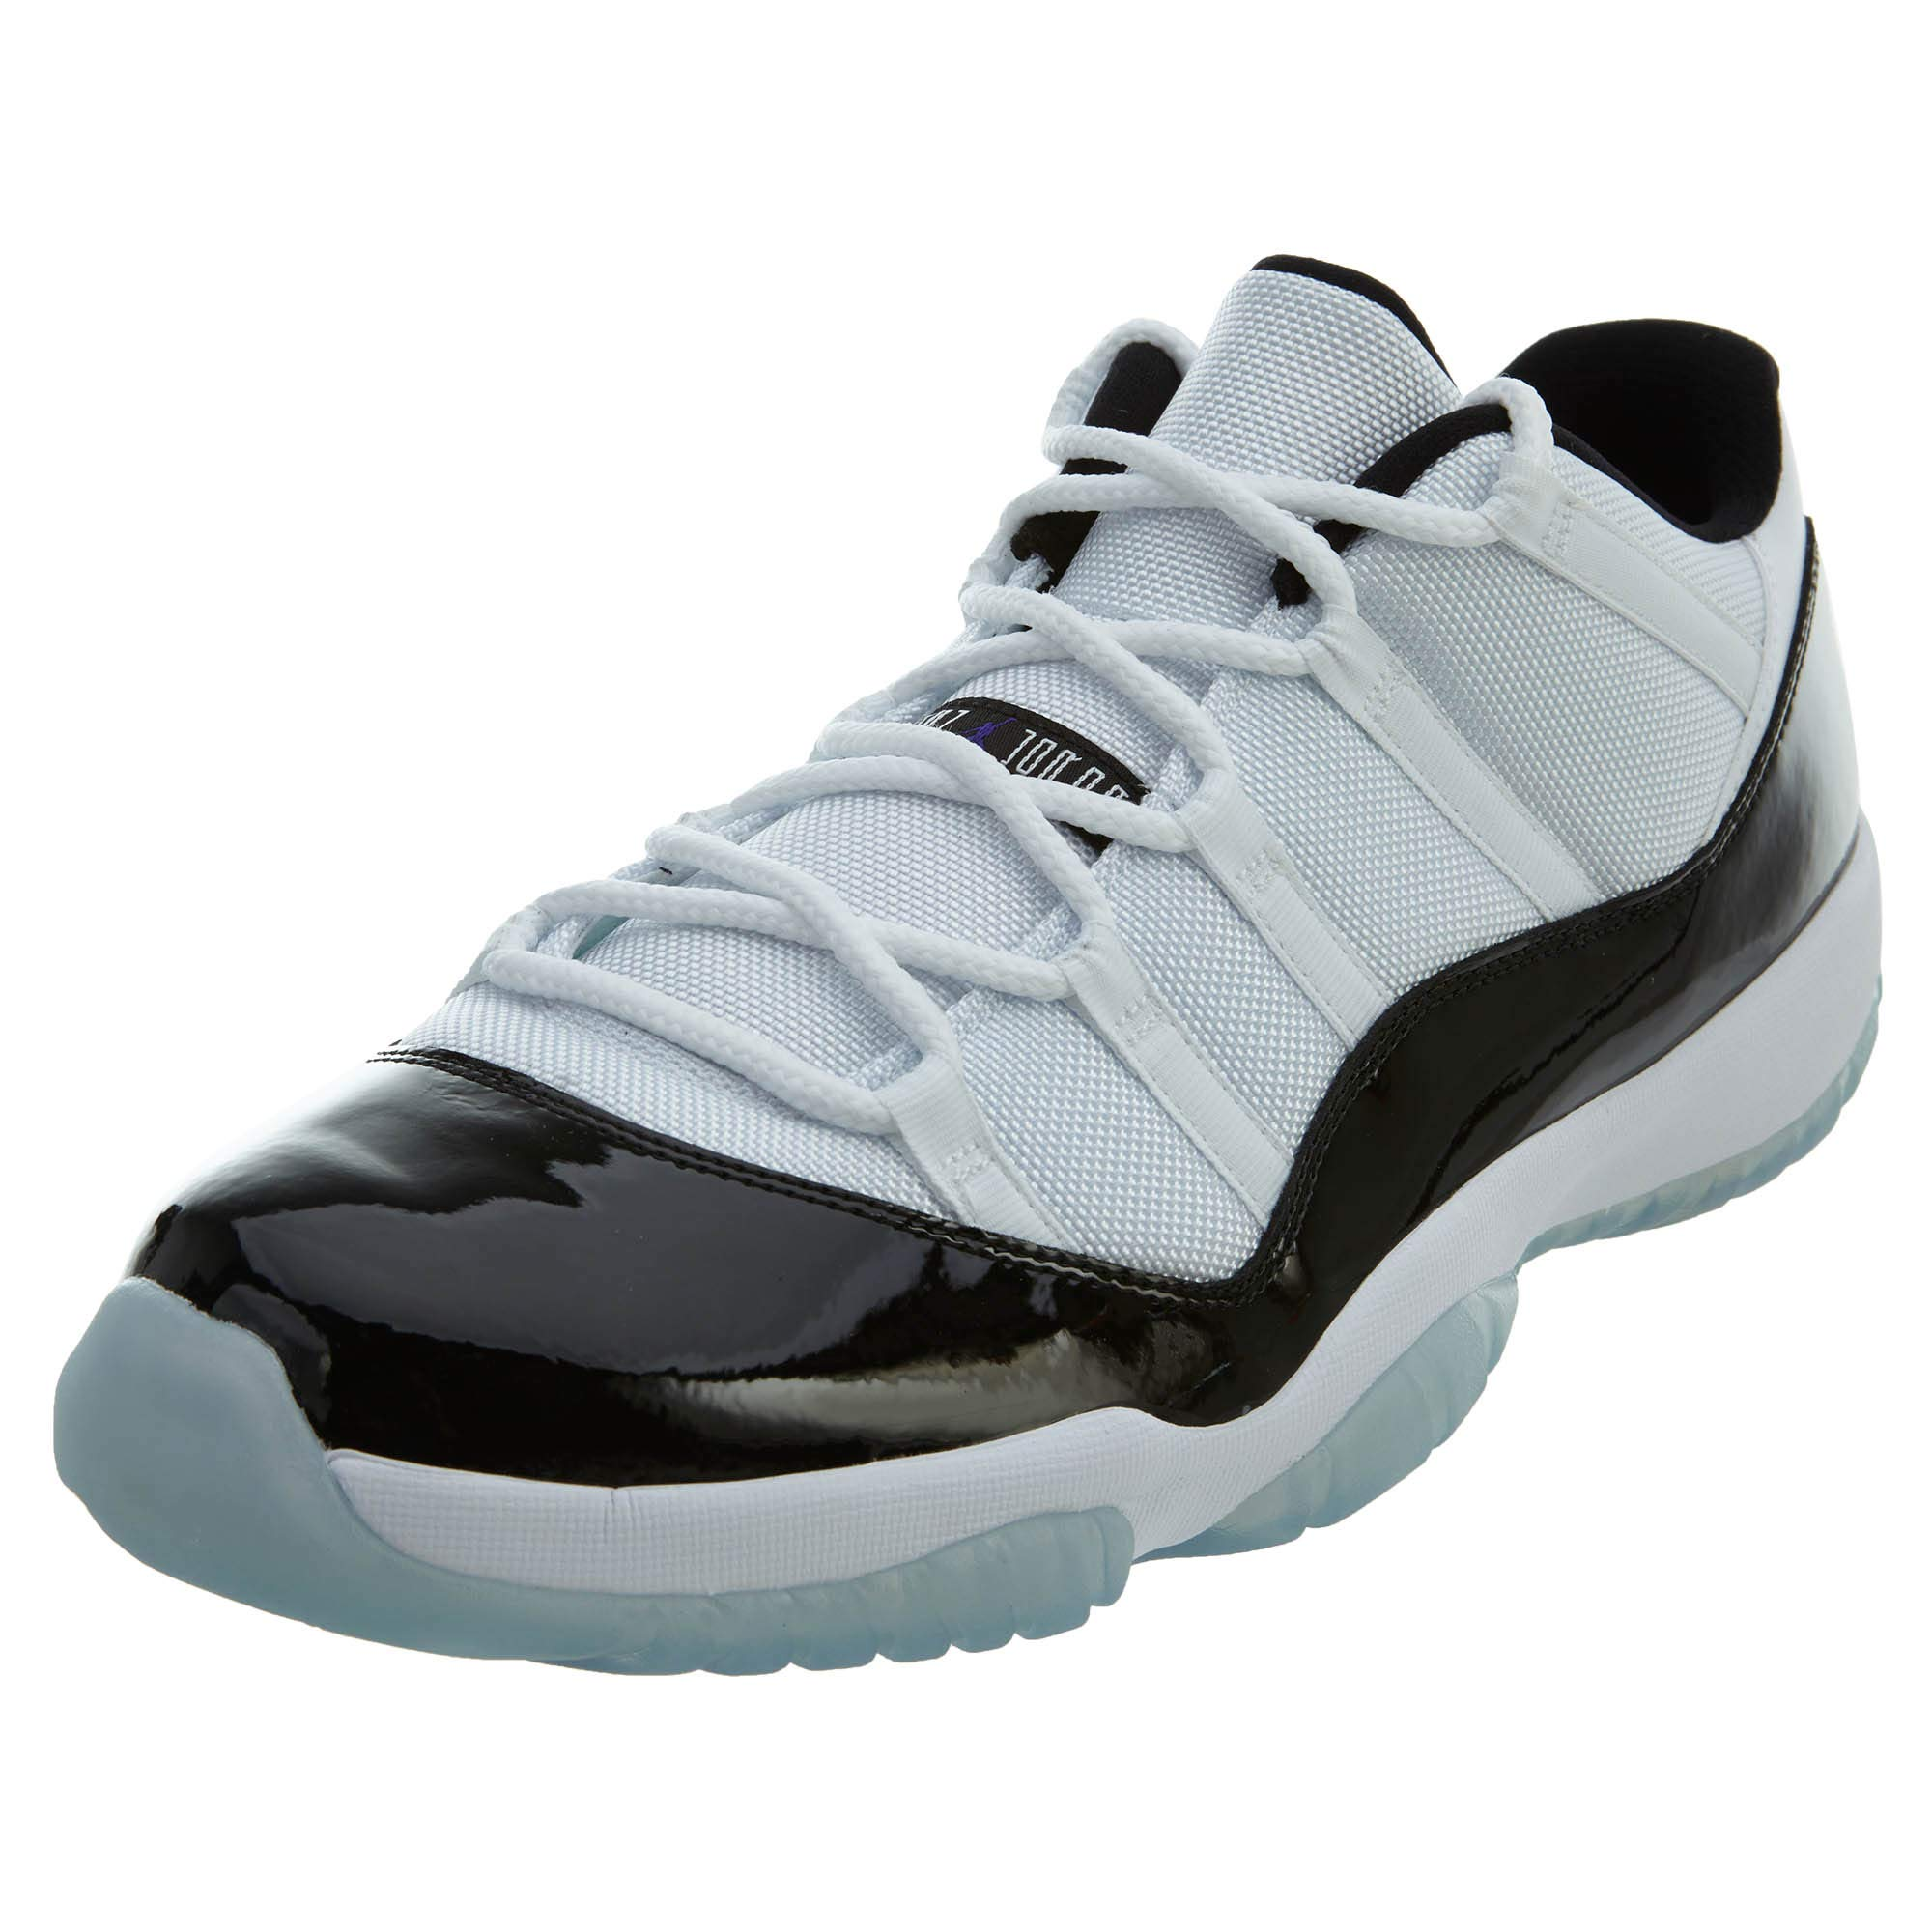 f49f2f433c1f Galleon - Air Jordan 11 Retro Low